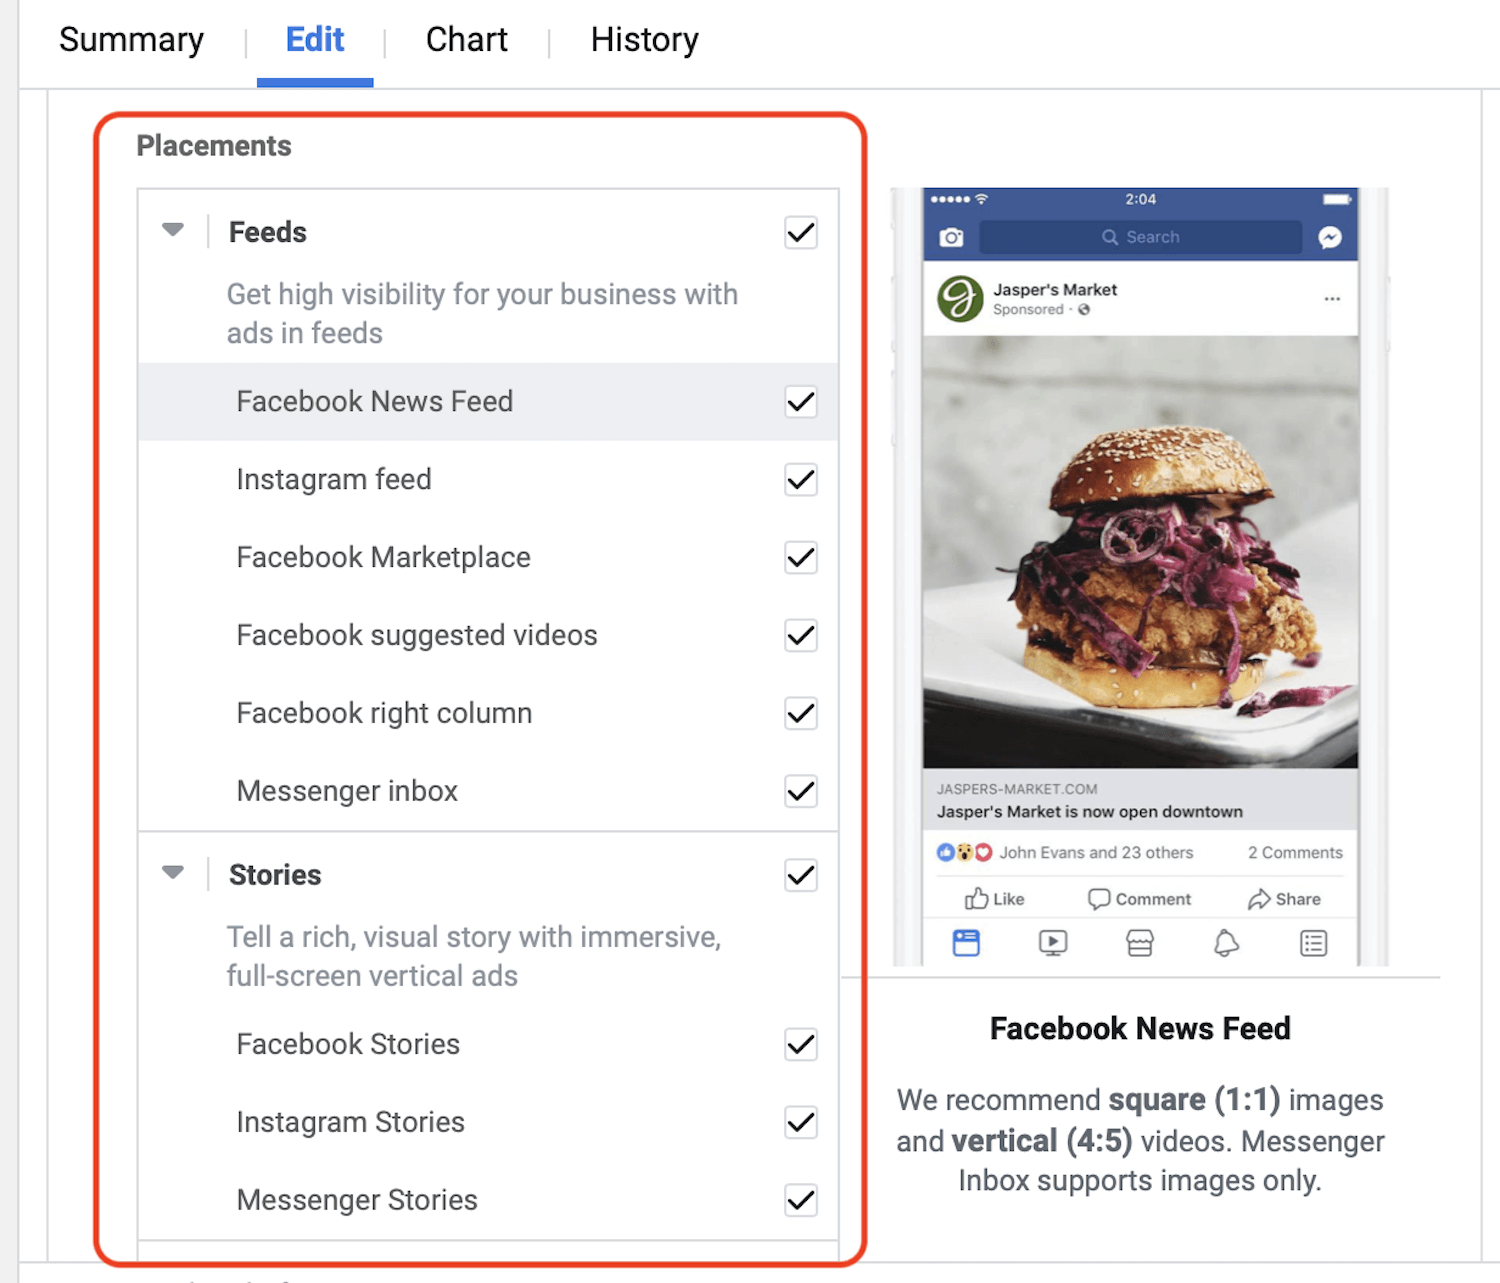 Facebook Ad Placements for Marketers: How to Make the Right Choices